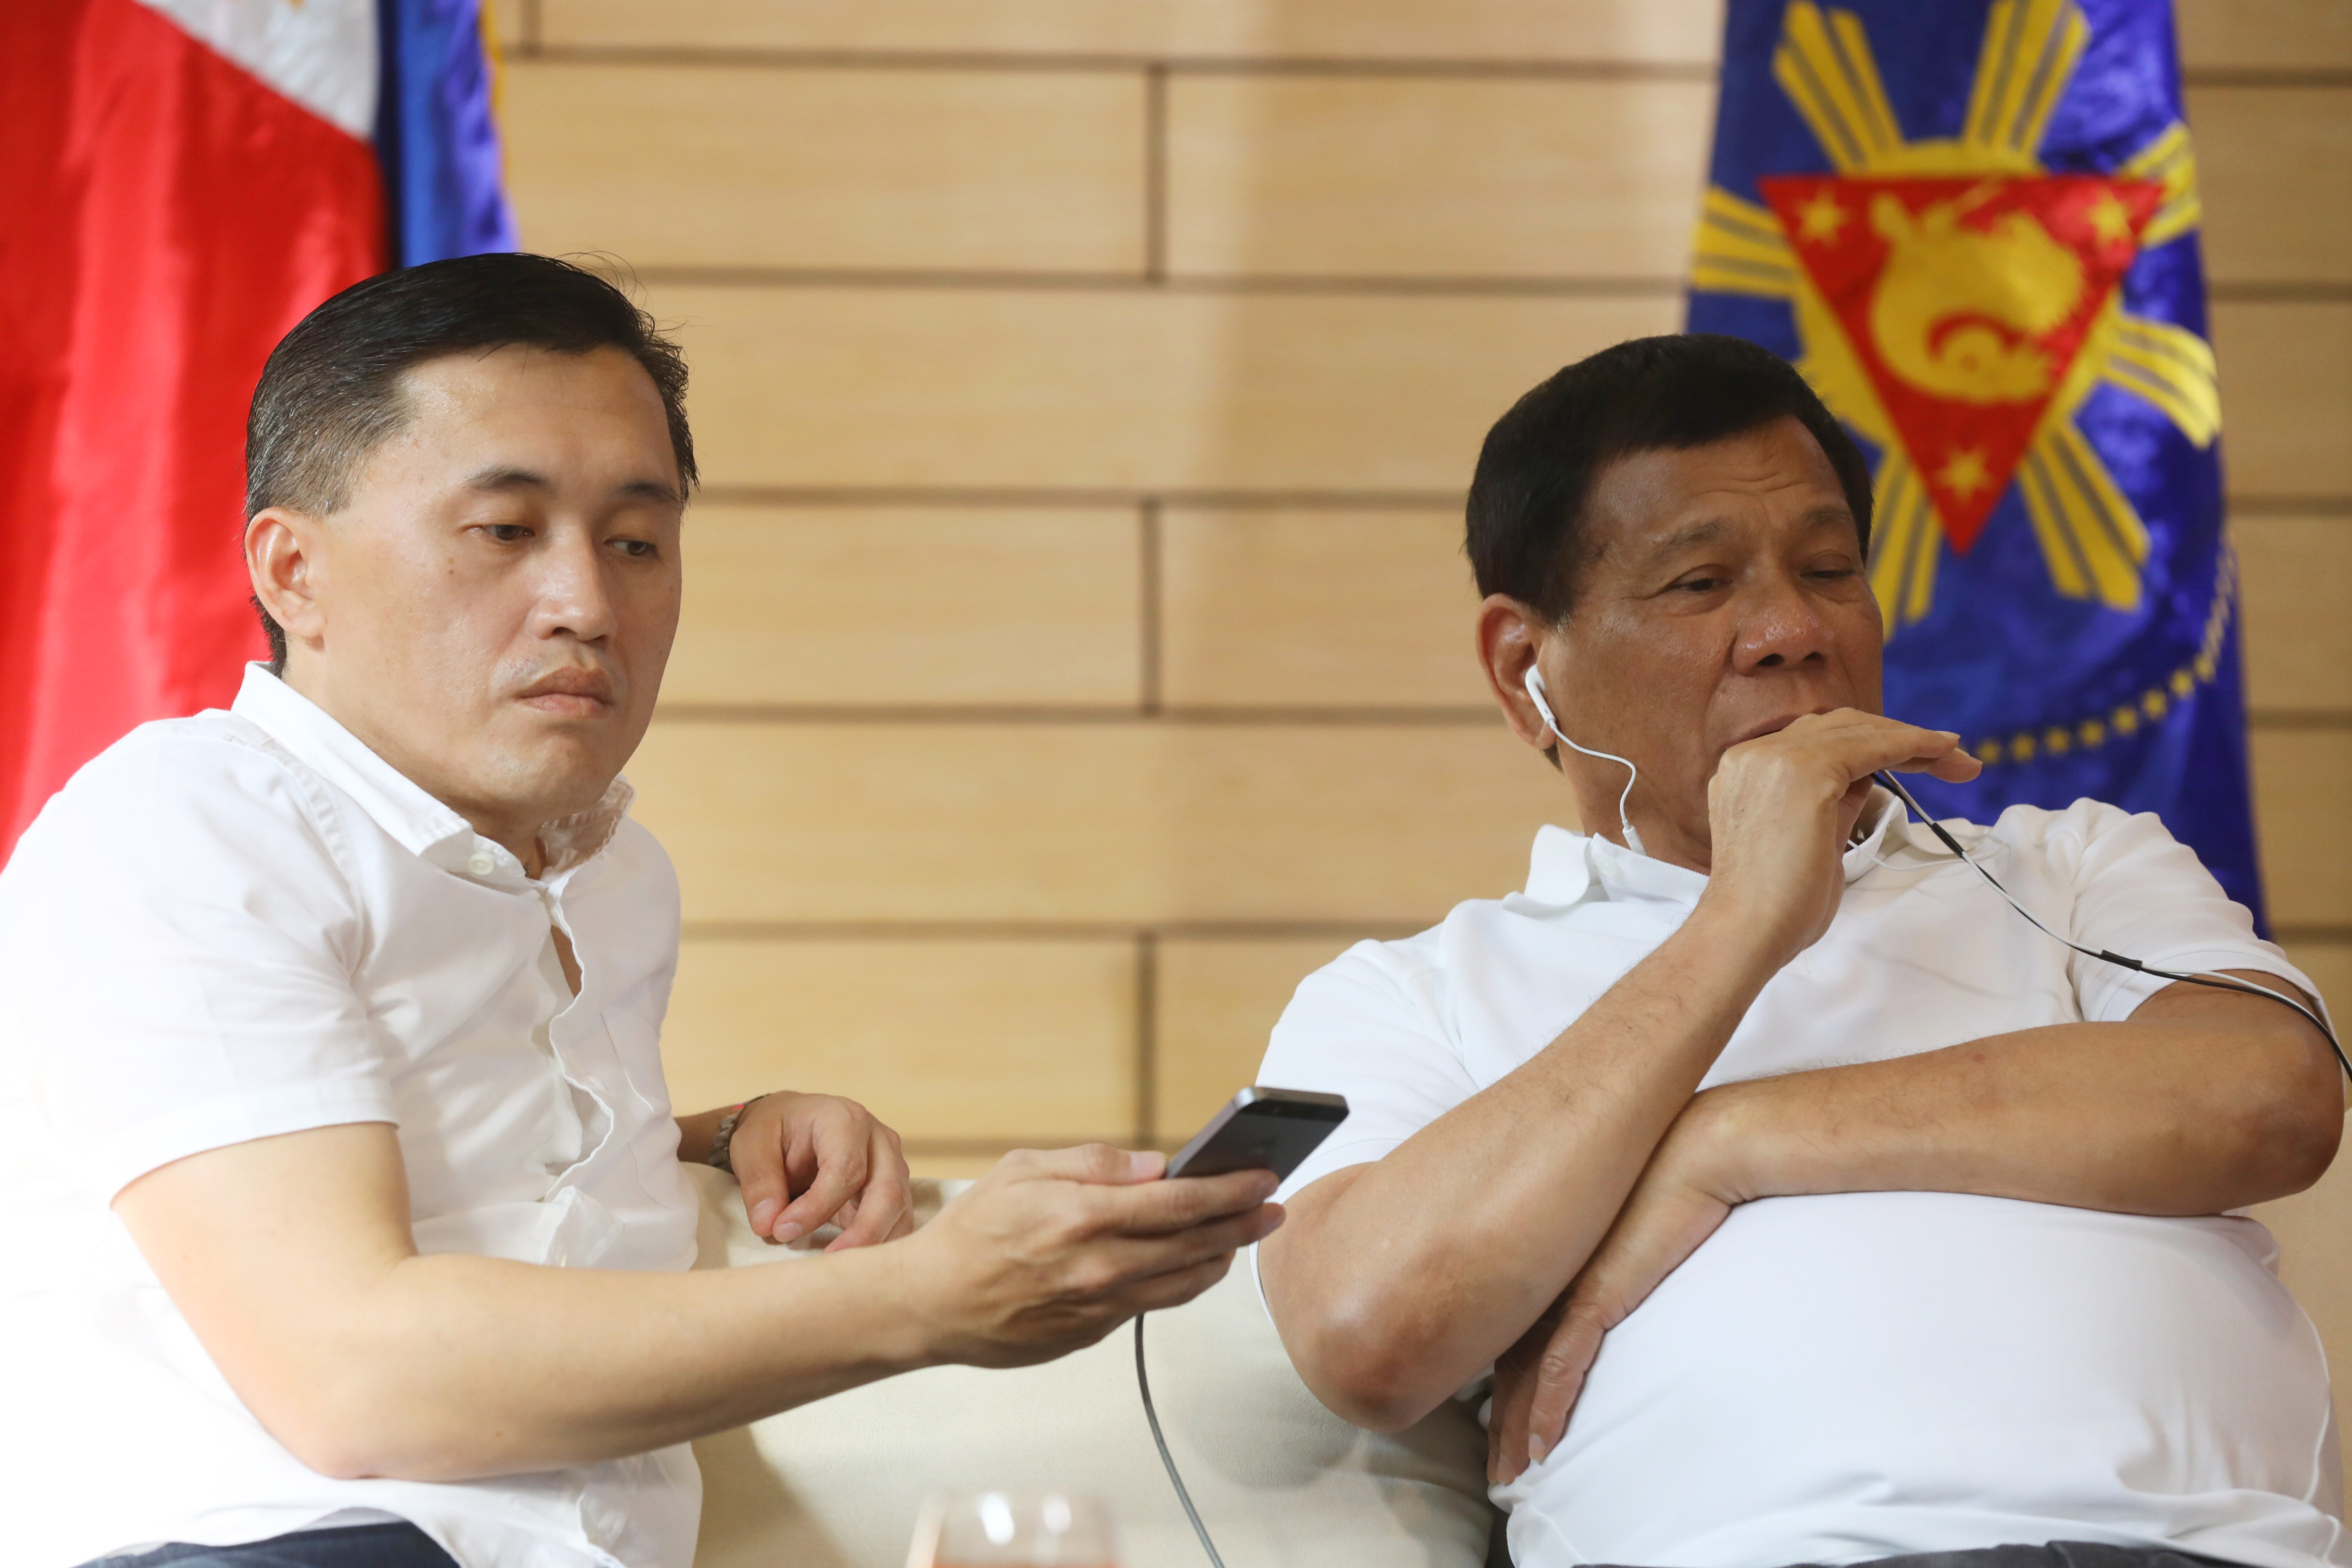 GATEWAY TO DUTERTE. Special Assistant to the President Bong Go helps President Duterte during his phone call with Chinese leader Xi Jinping. Presidential photo